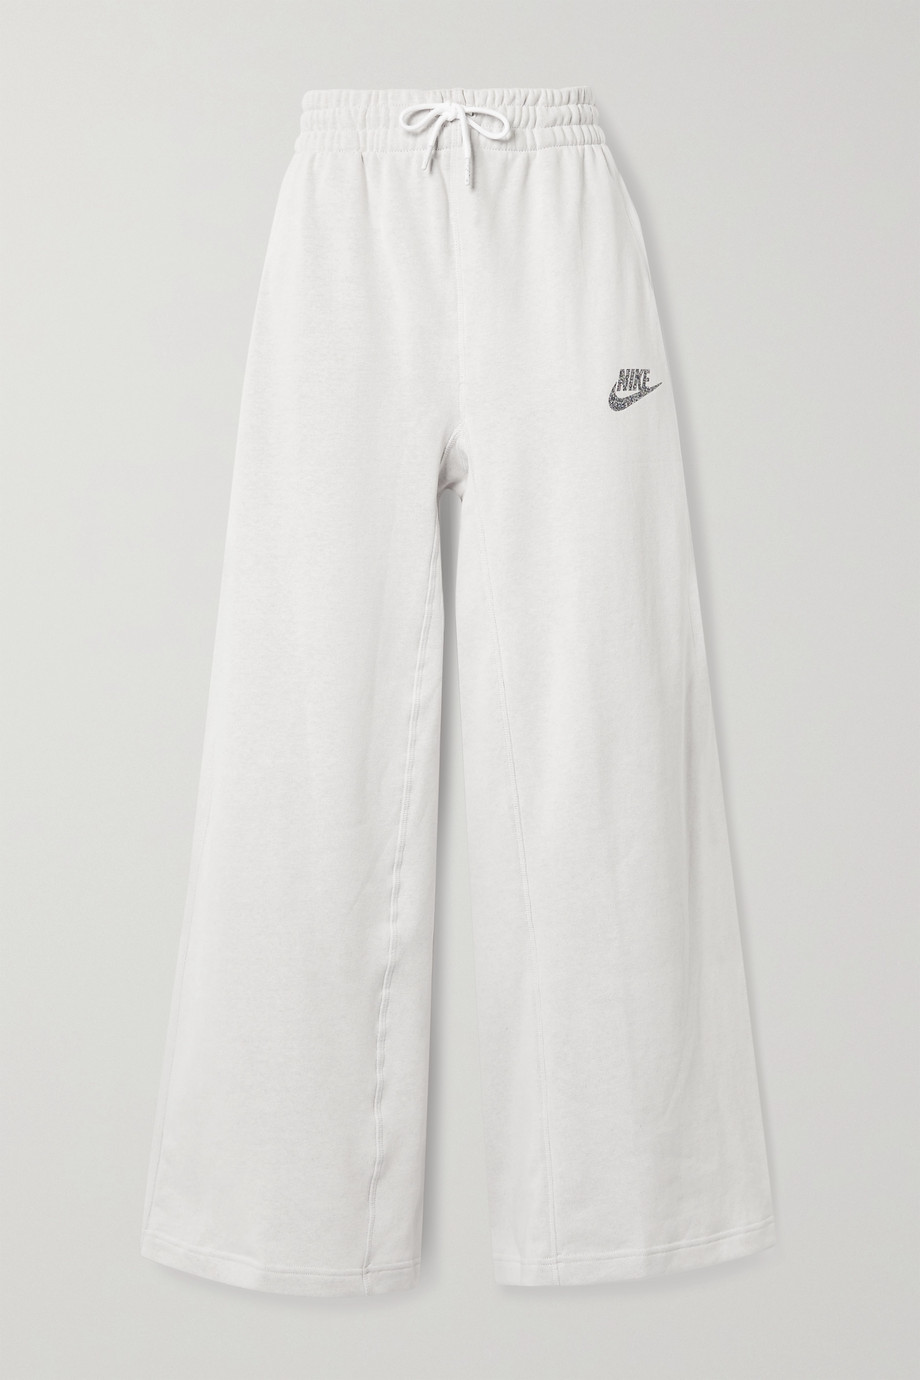 NIKE Sportswear cotton-blend jersey wide-leg track pants